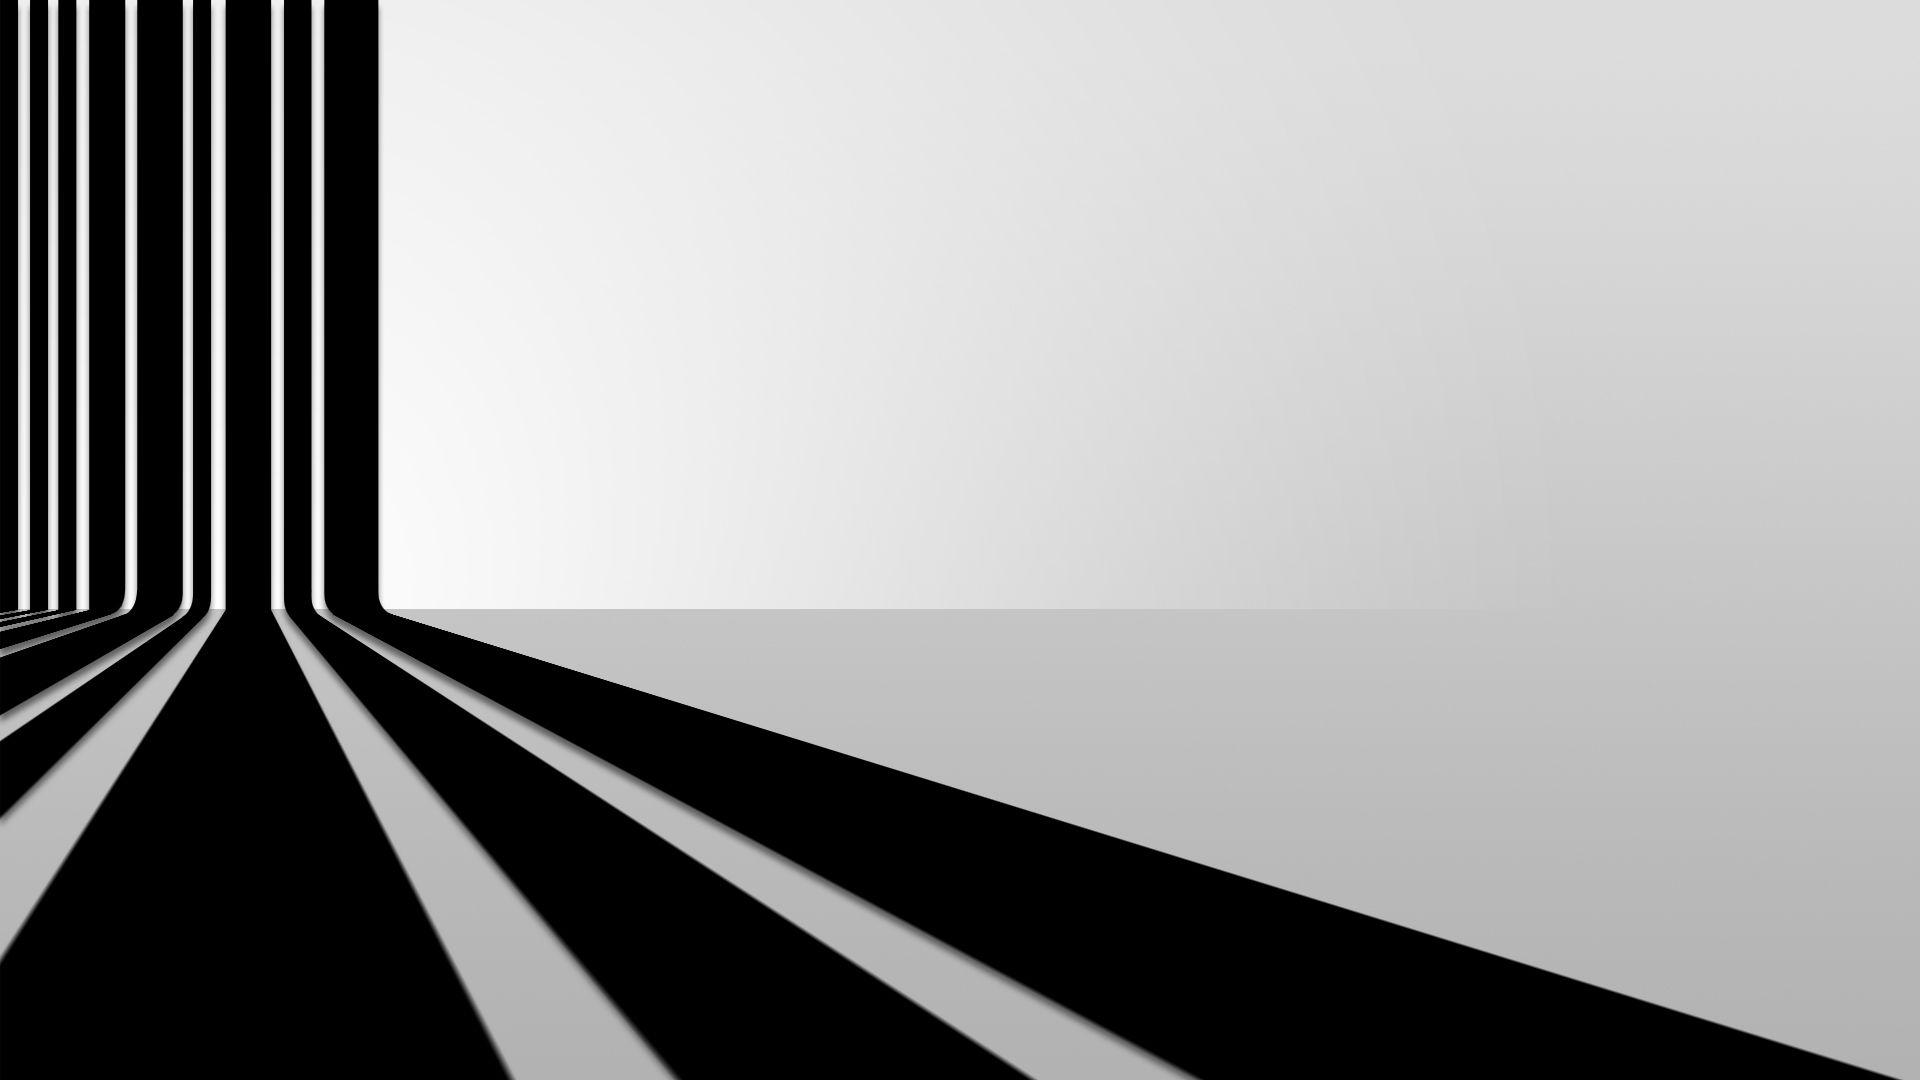 Free Wallpapers Black And White - Wallpaper Cave